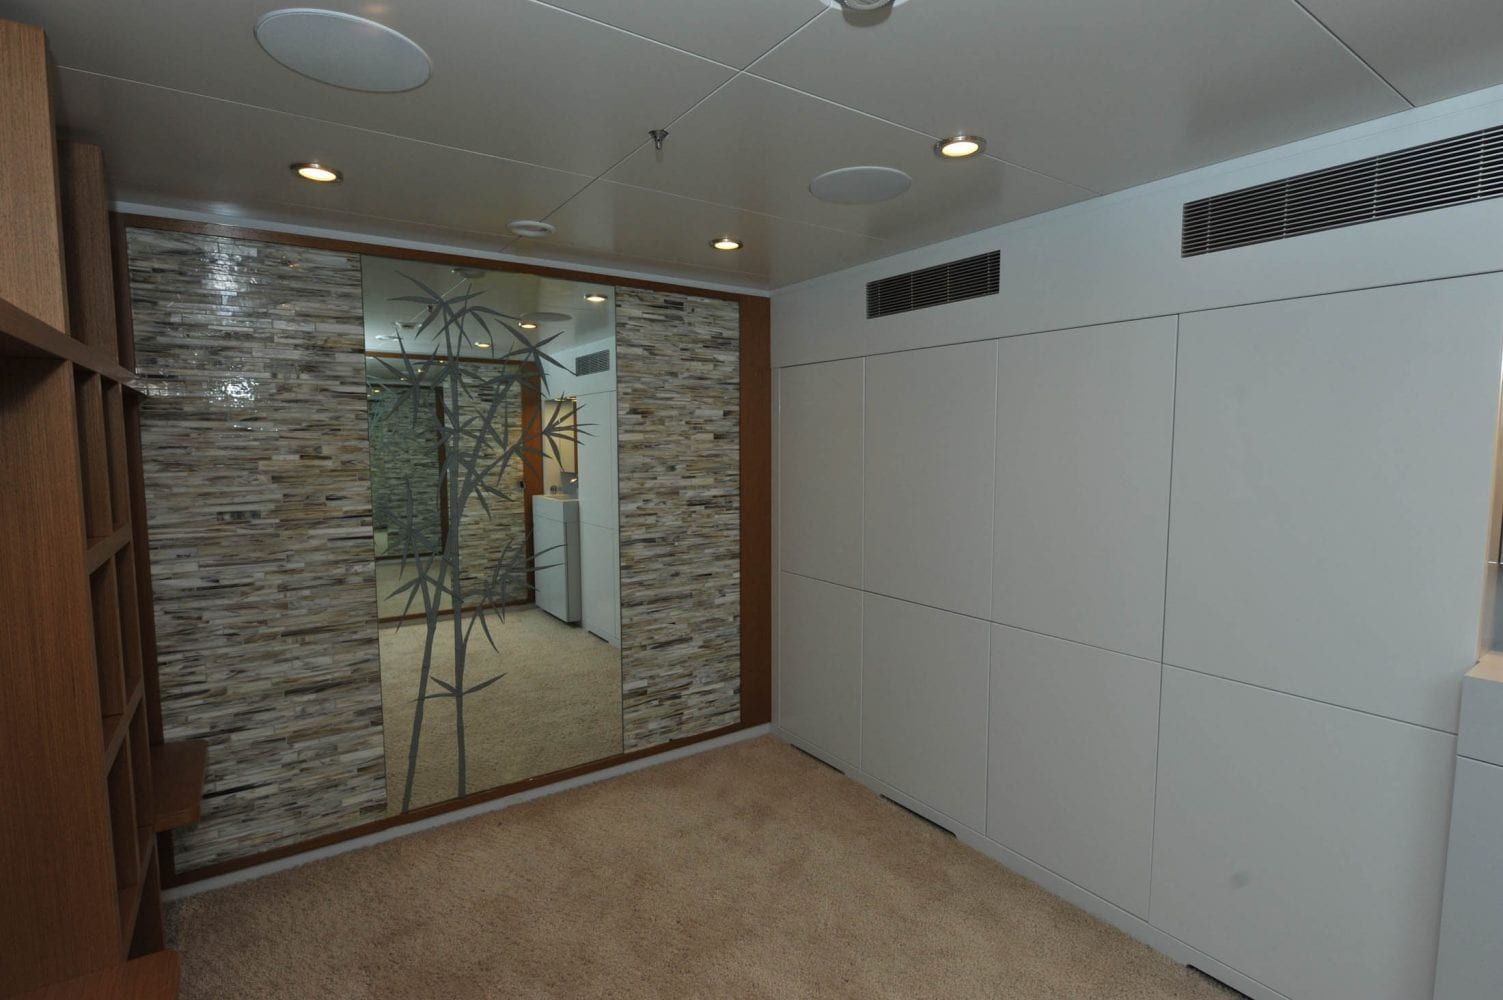 180' Amels 4 You Spa Room-5